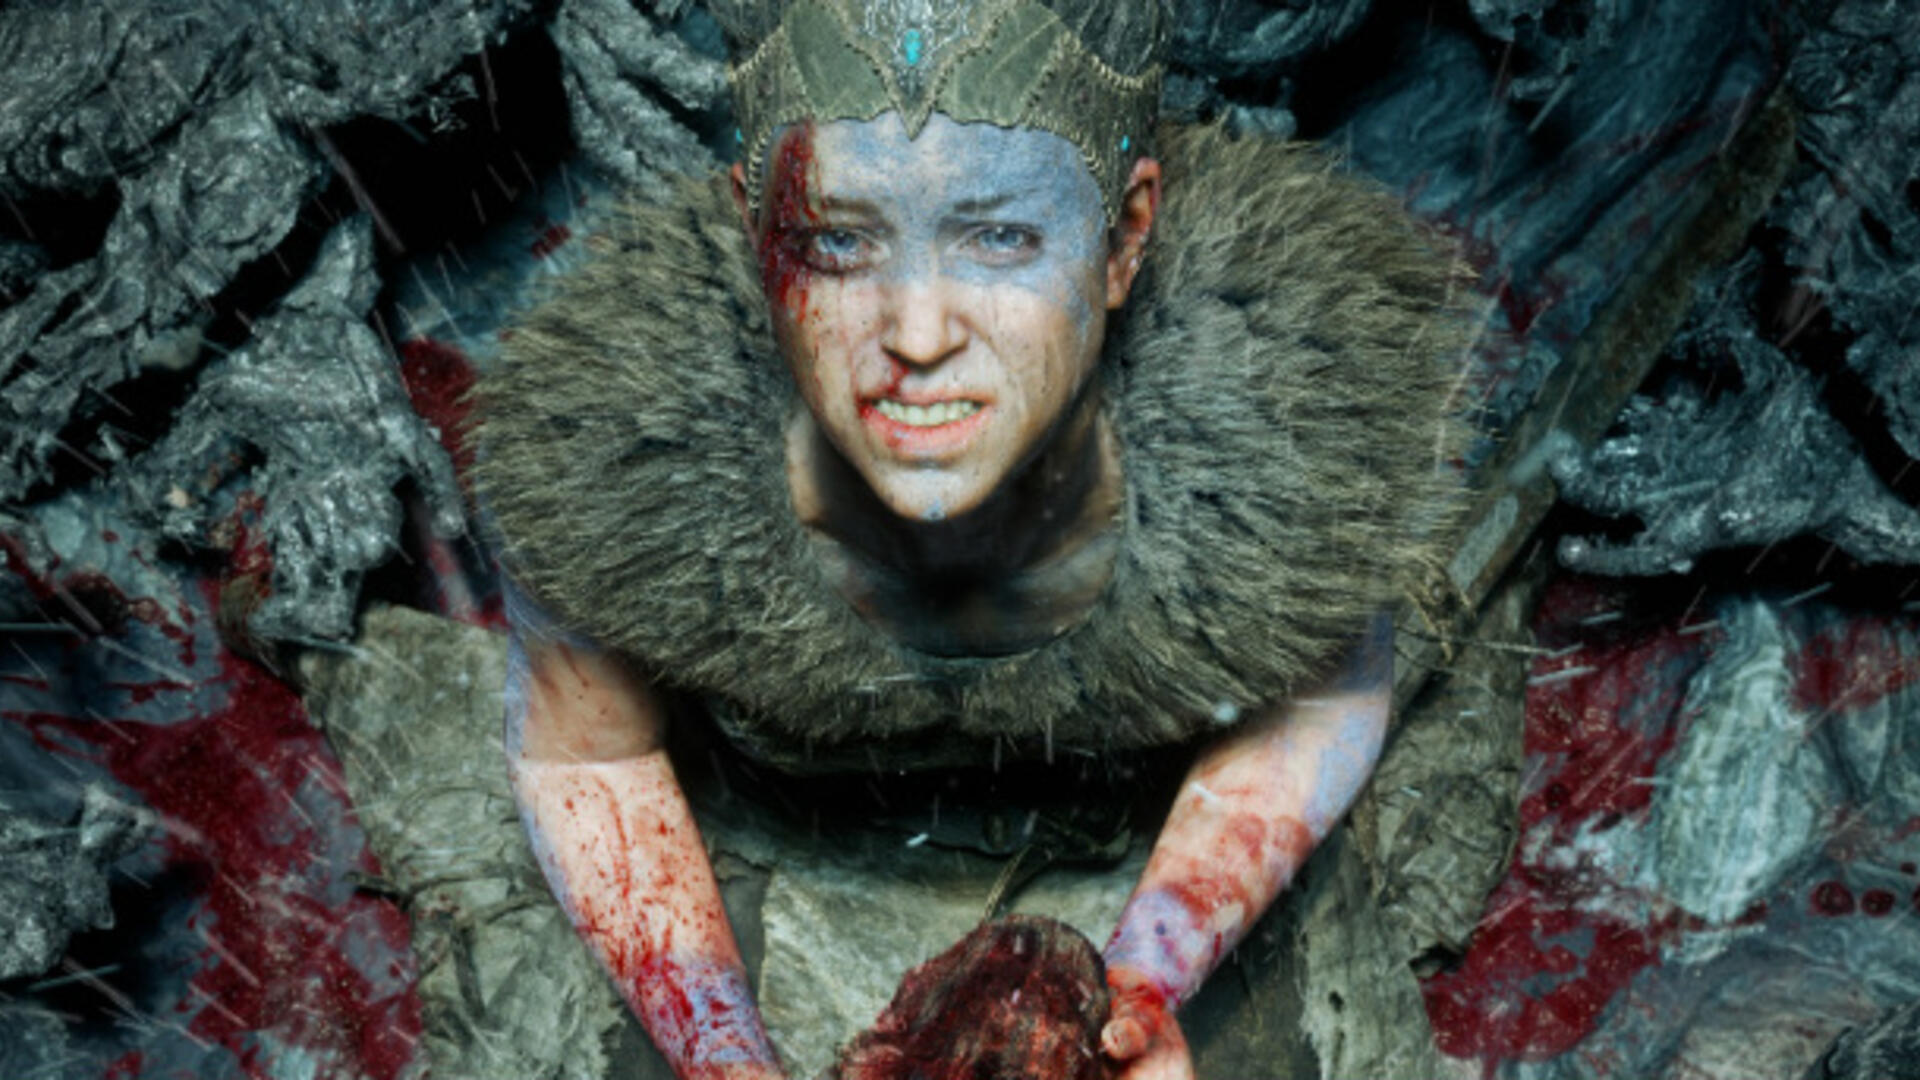 Hellblade: Senua's Sacrifice Sweep BAFTAs While Breath of the Wild Mostly Snubbed